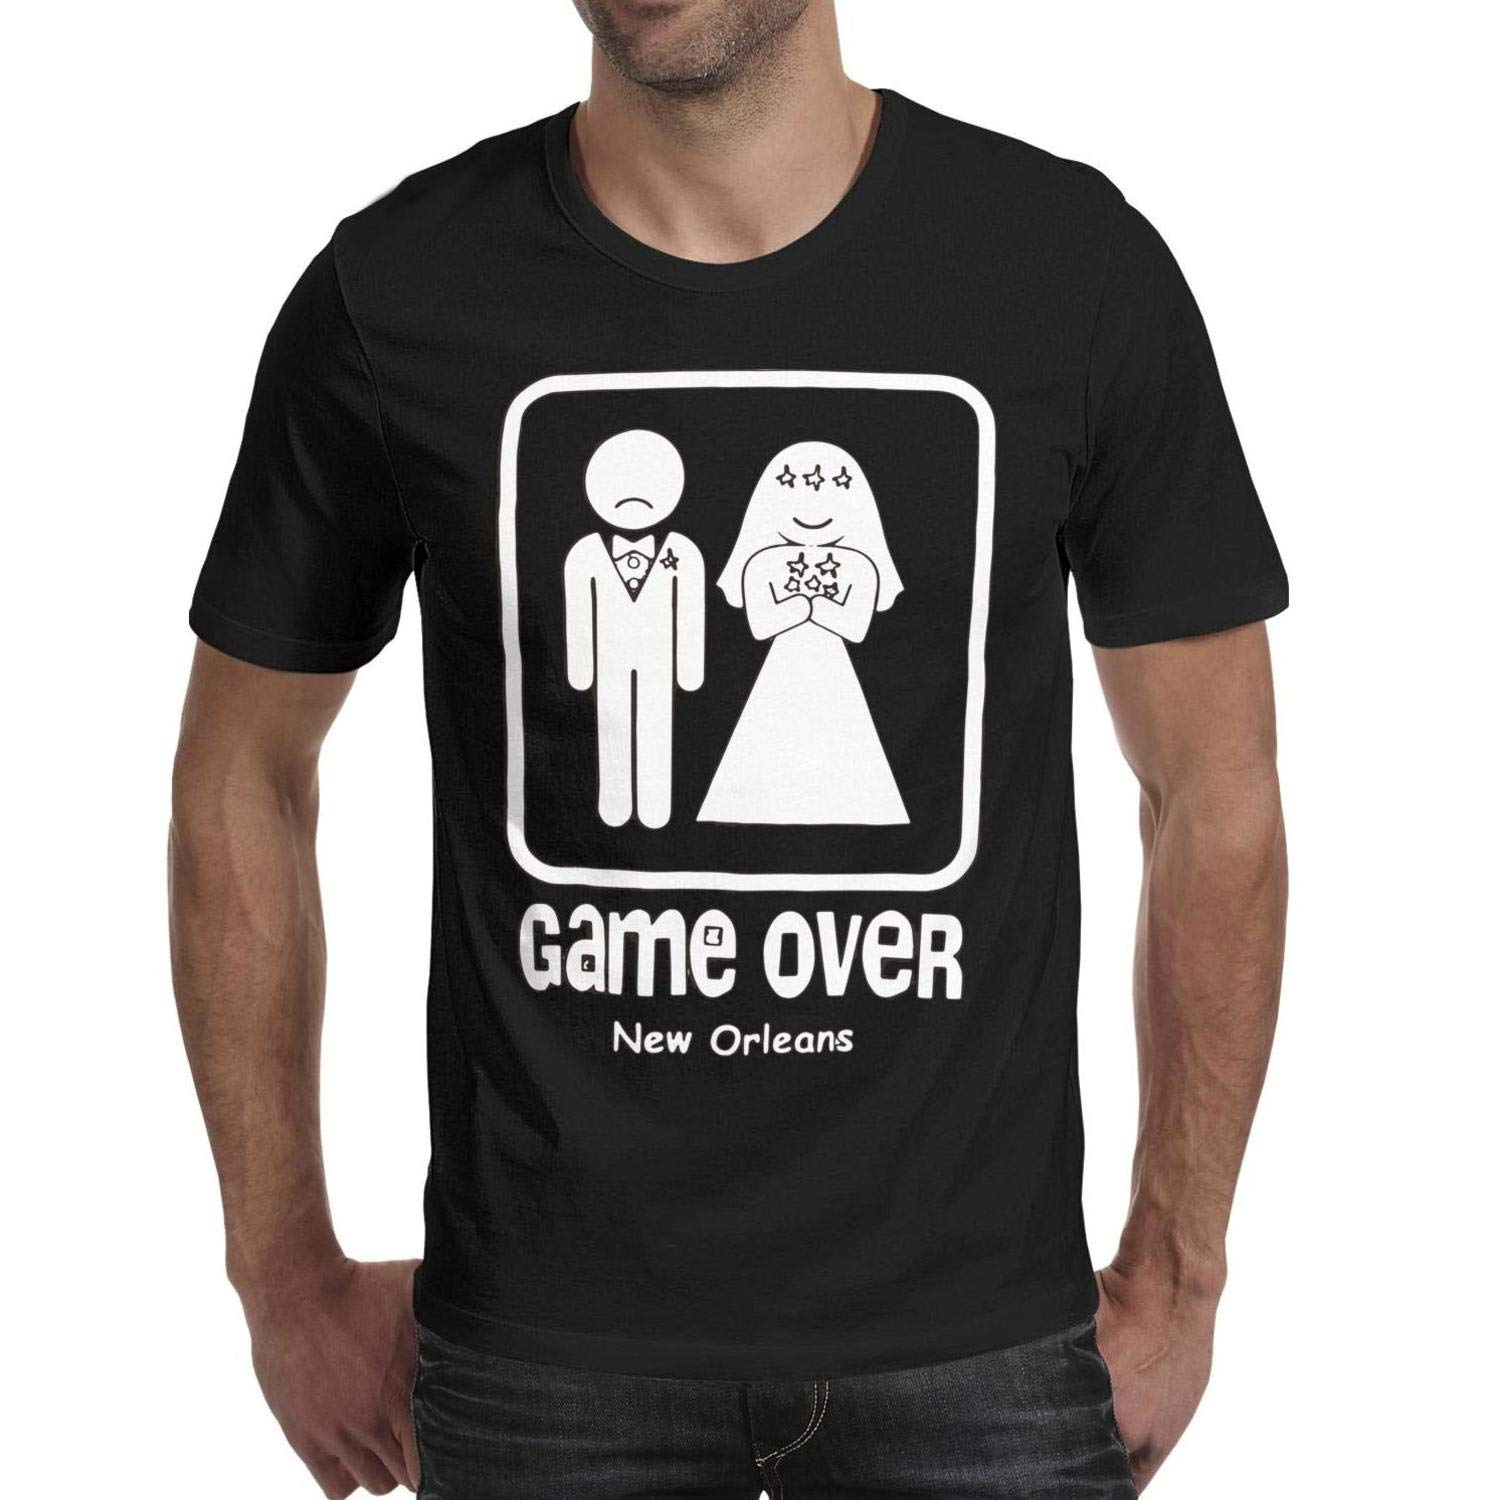 Wedding-Game Over Mens Guys Short Sleeve tee Shirt.A Cool Dry Casual 100% Cotton T-Shirts